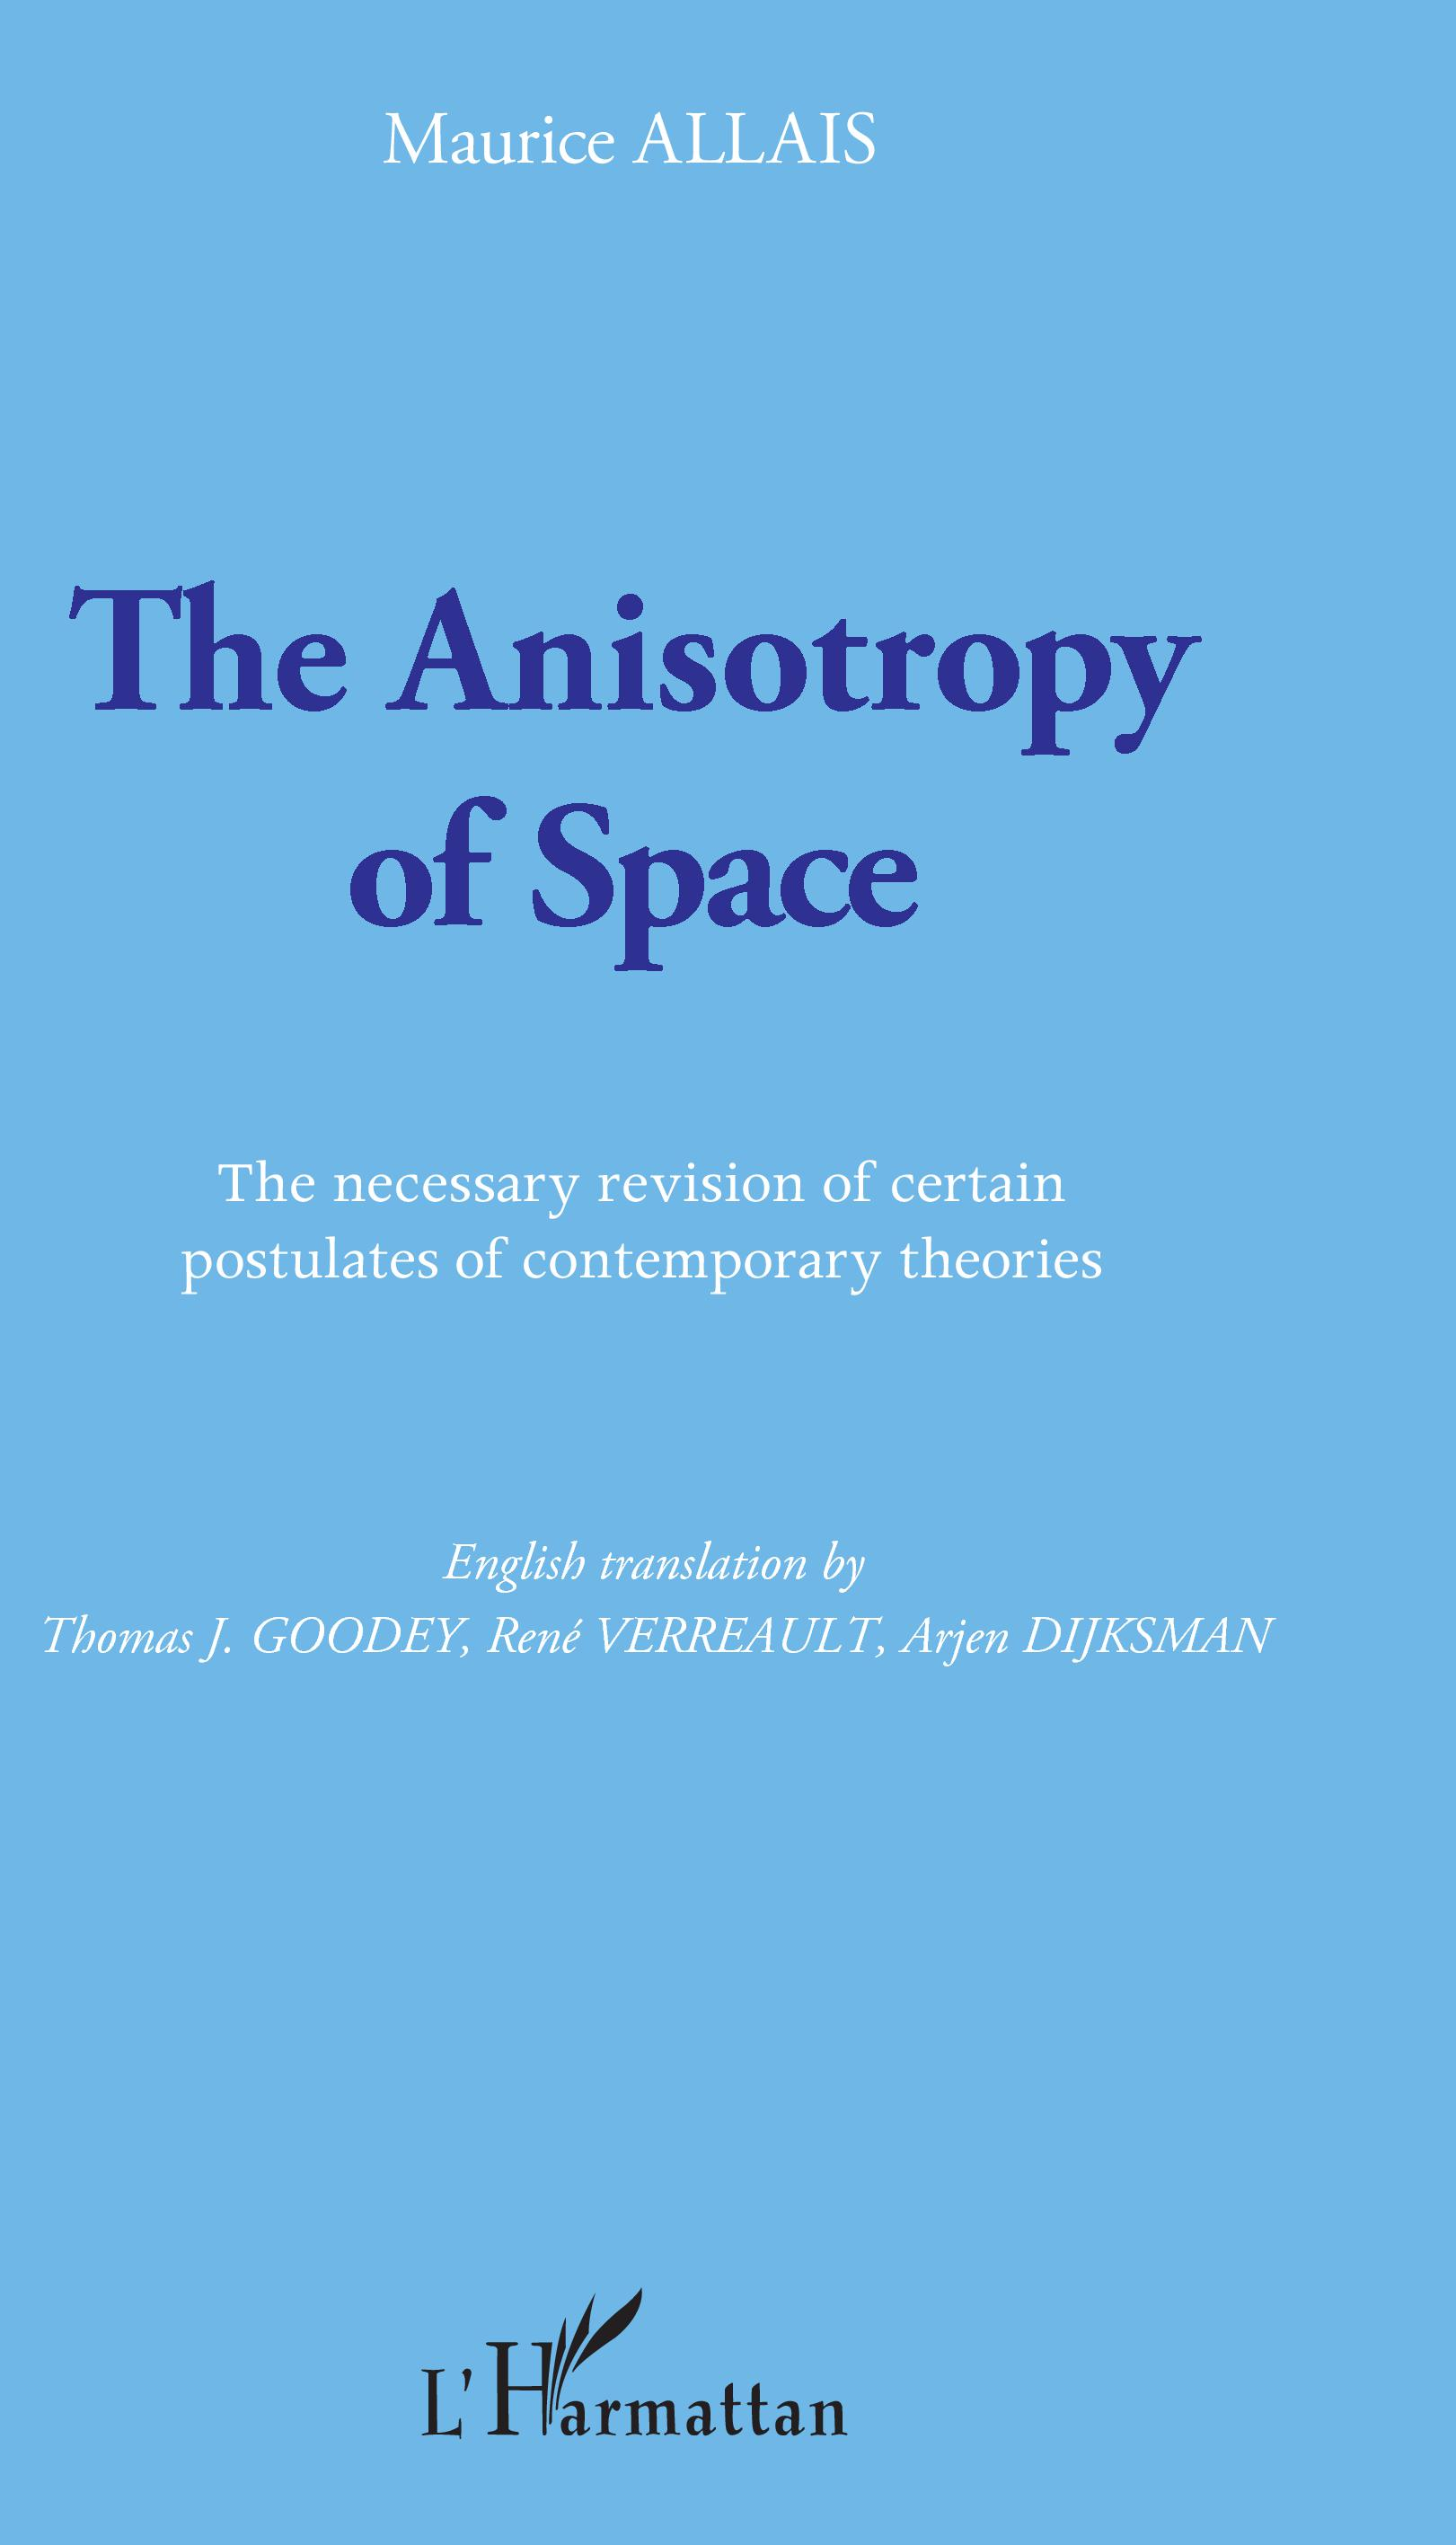 The Anisotropy of Space